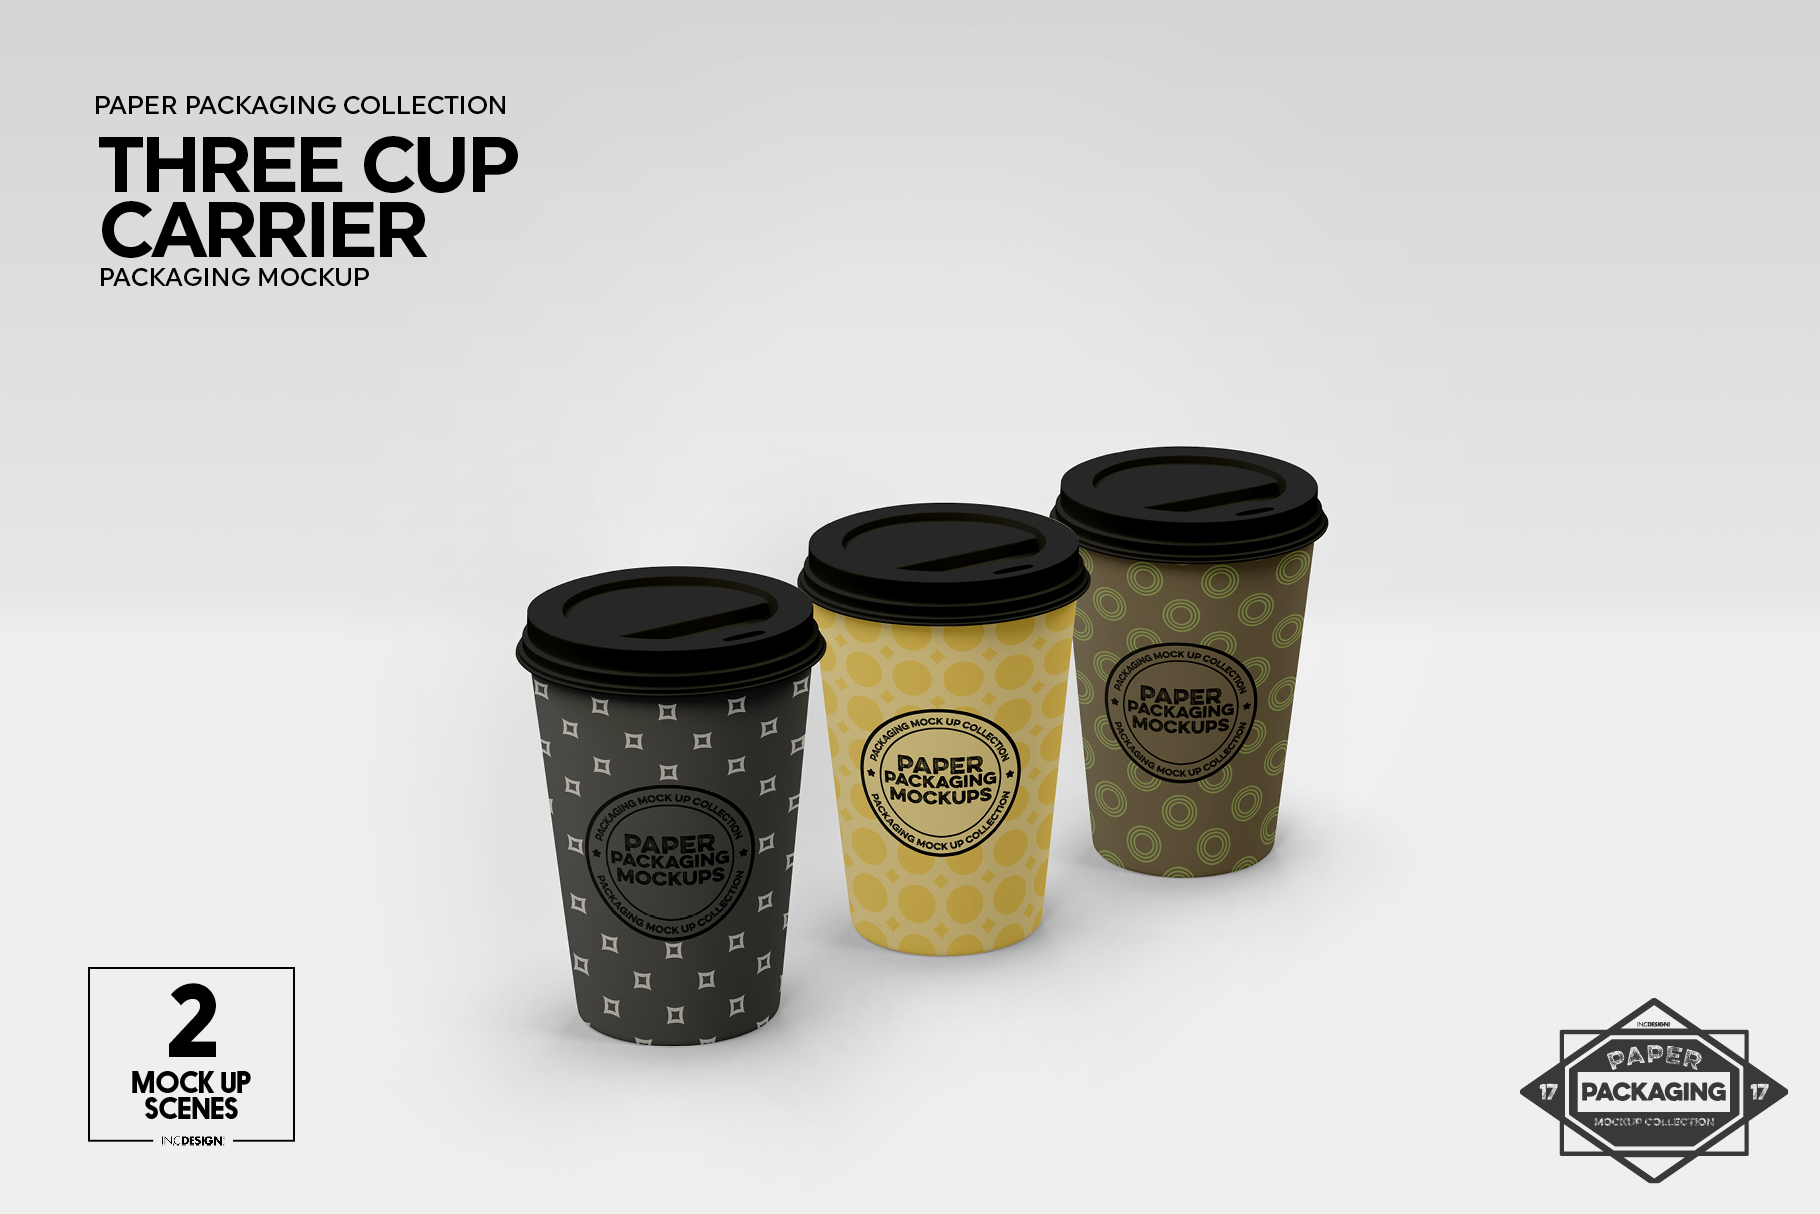 Three Cup Paper Carrier Packaging Mockup example image 5